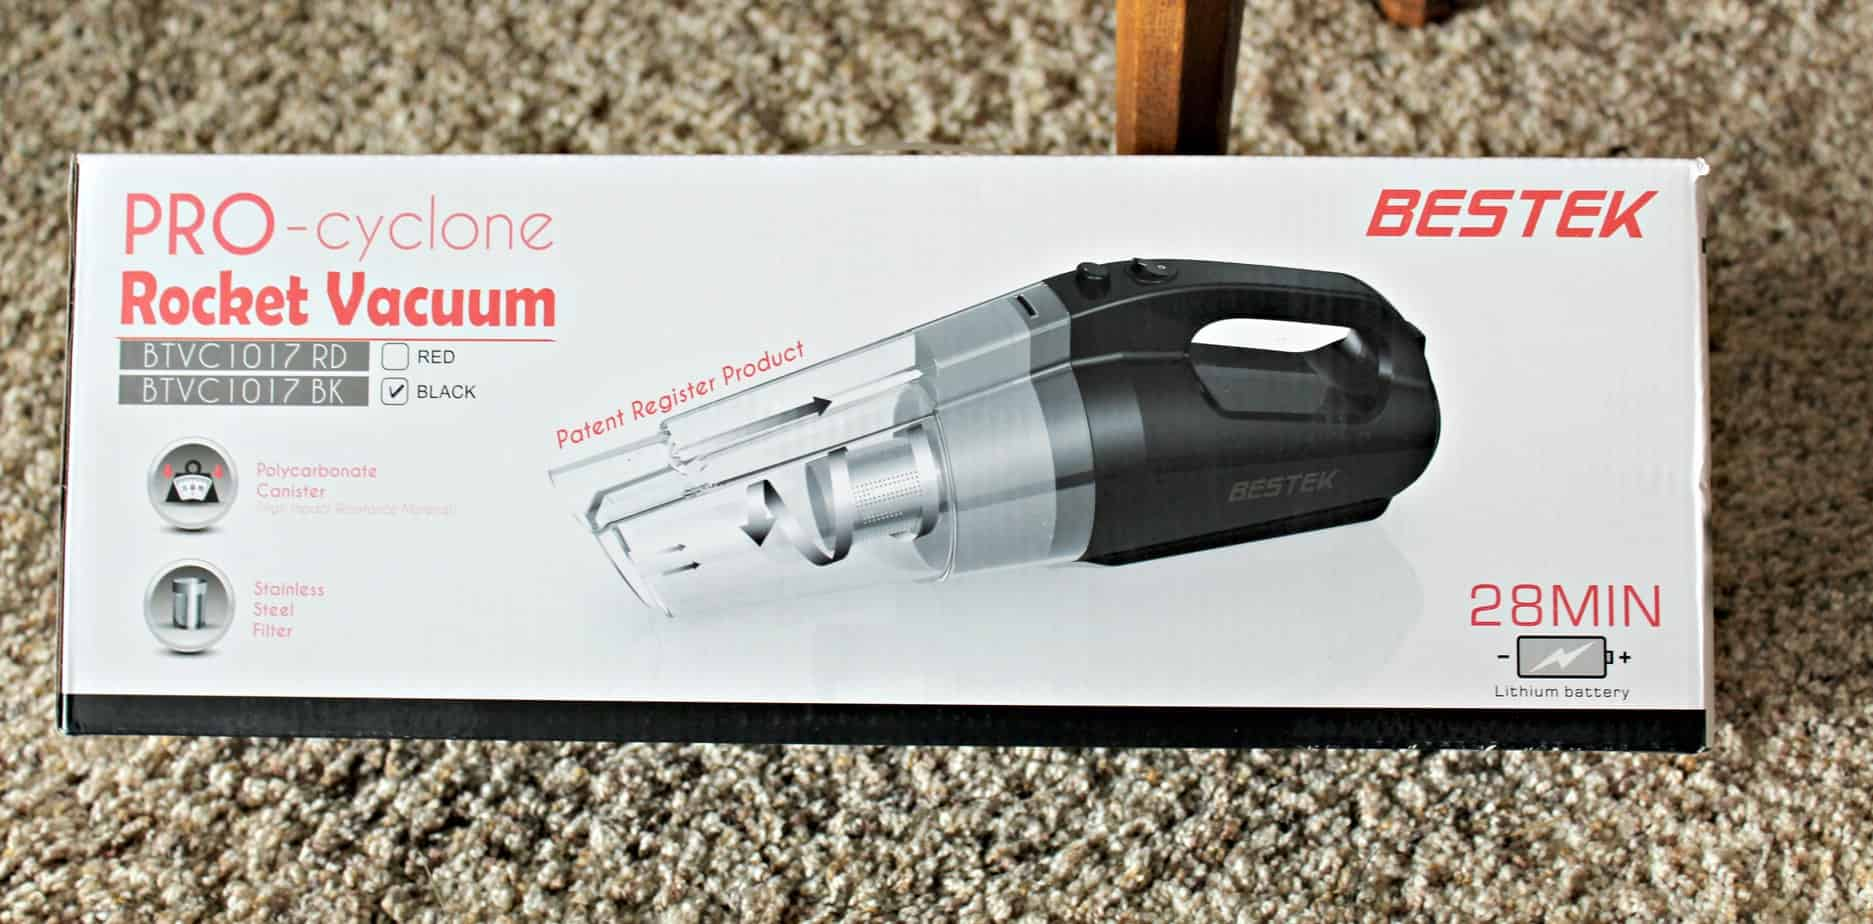 BESTEK Pro- Cyclone Rocket Cordless Stick Vacuum Cleaner